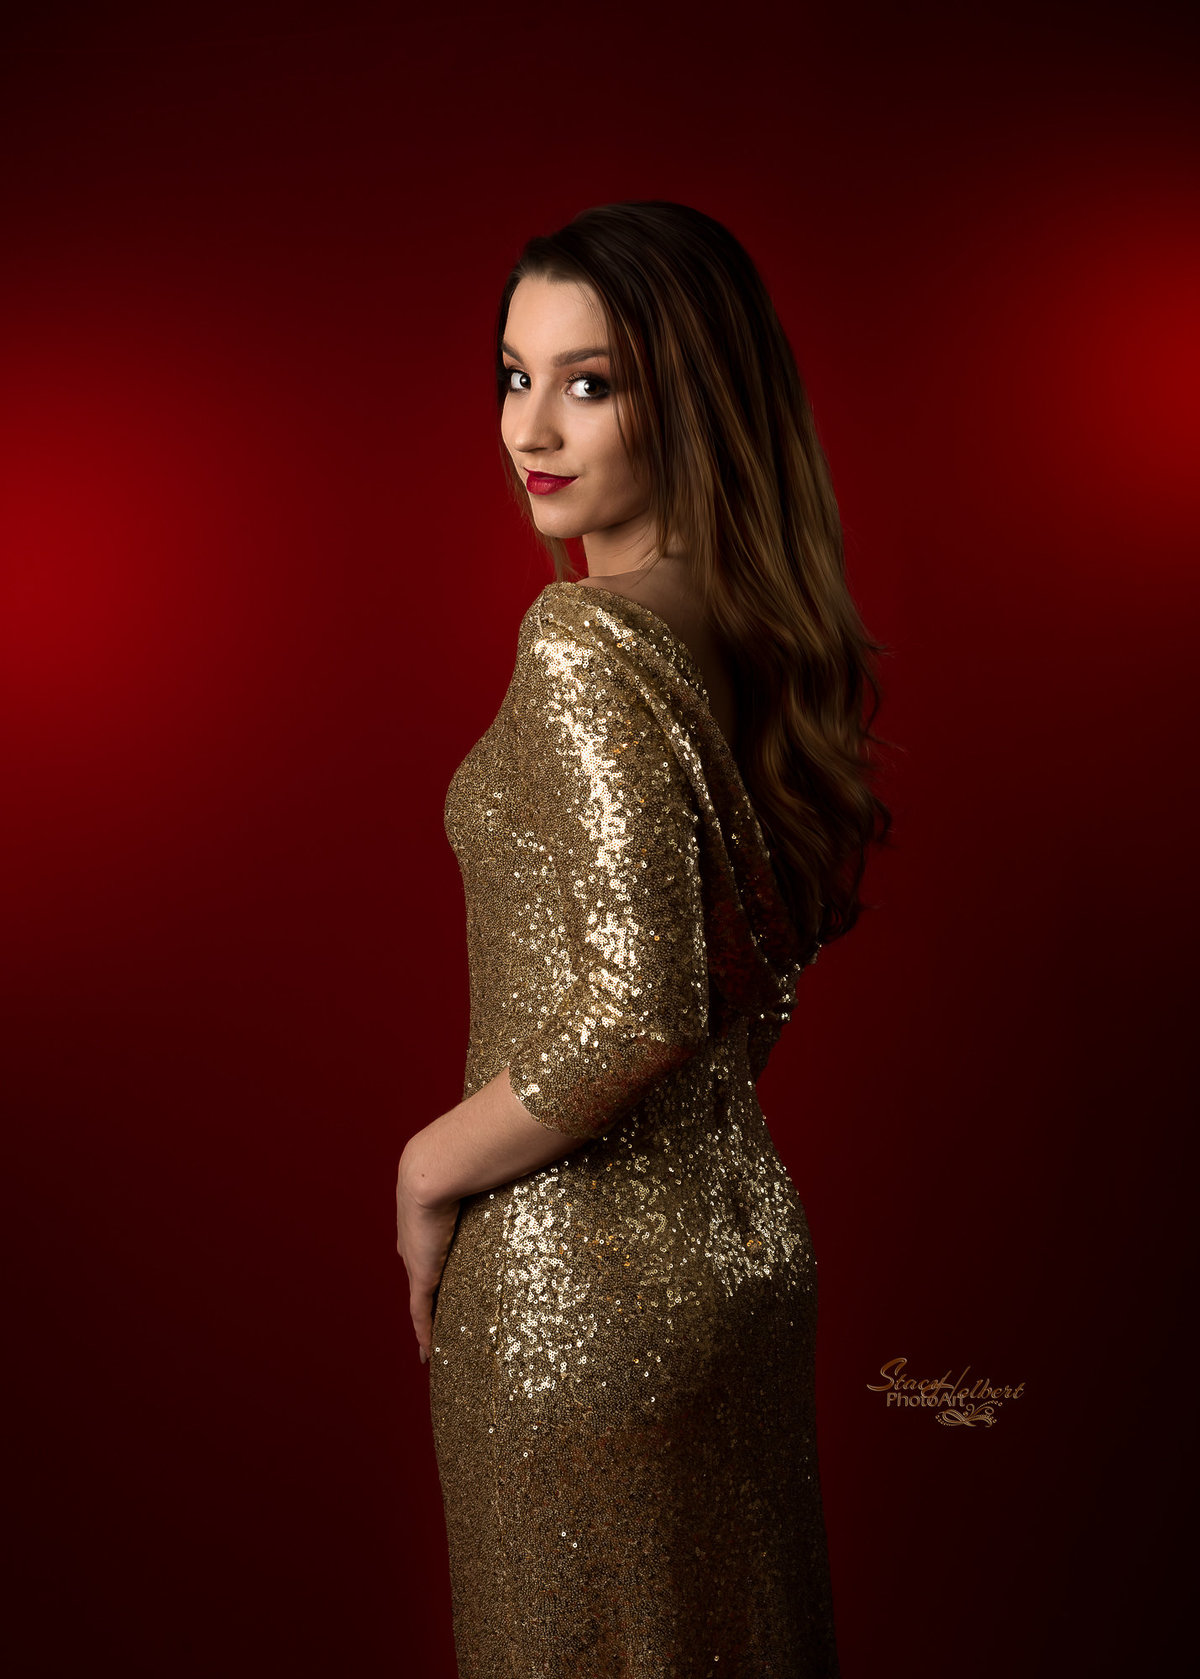 Senior girl glamour portrait with red backdrop and gold sequin dress.